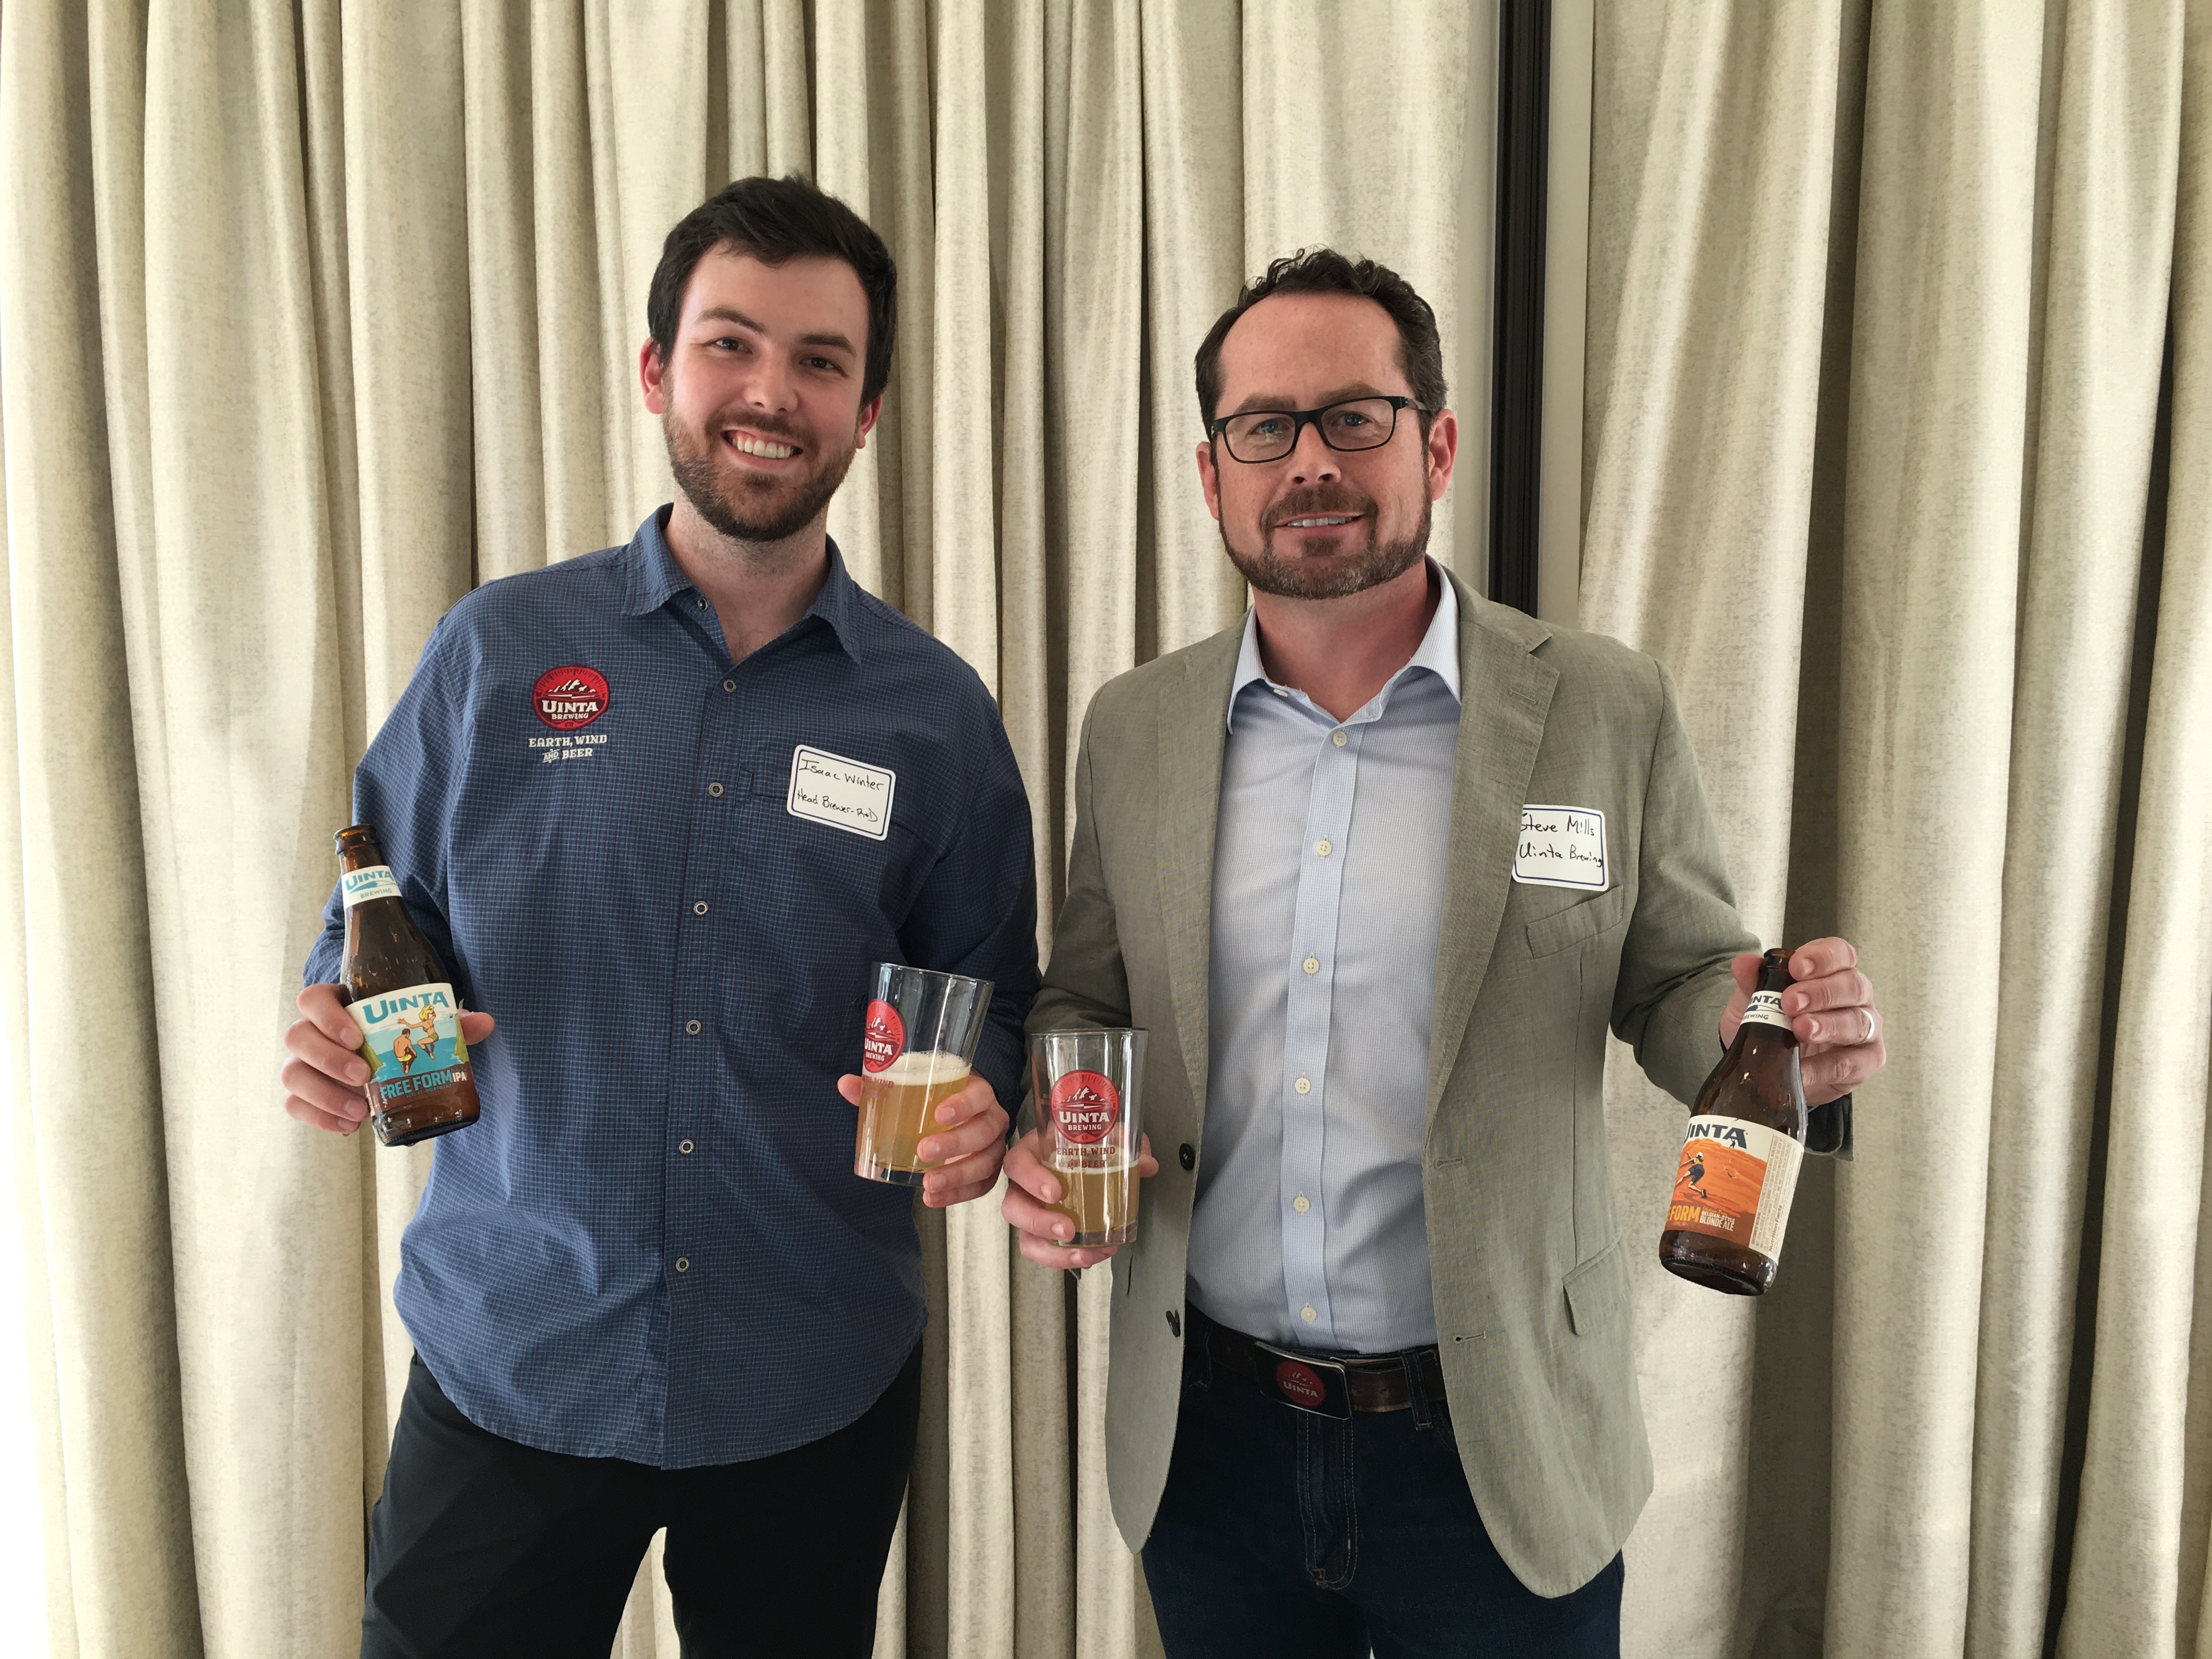 Uinta Brewing's R&D brewer Isaac Winter and Uinta's CEO Steve Mills at the launch of Uinta Brewing Free Form Gluten Free IPA and Belgian-Style Blonde Ale.